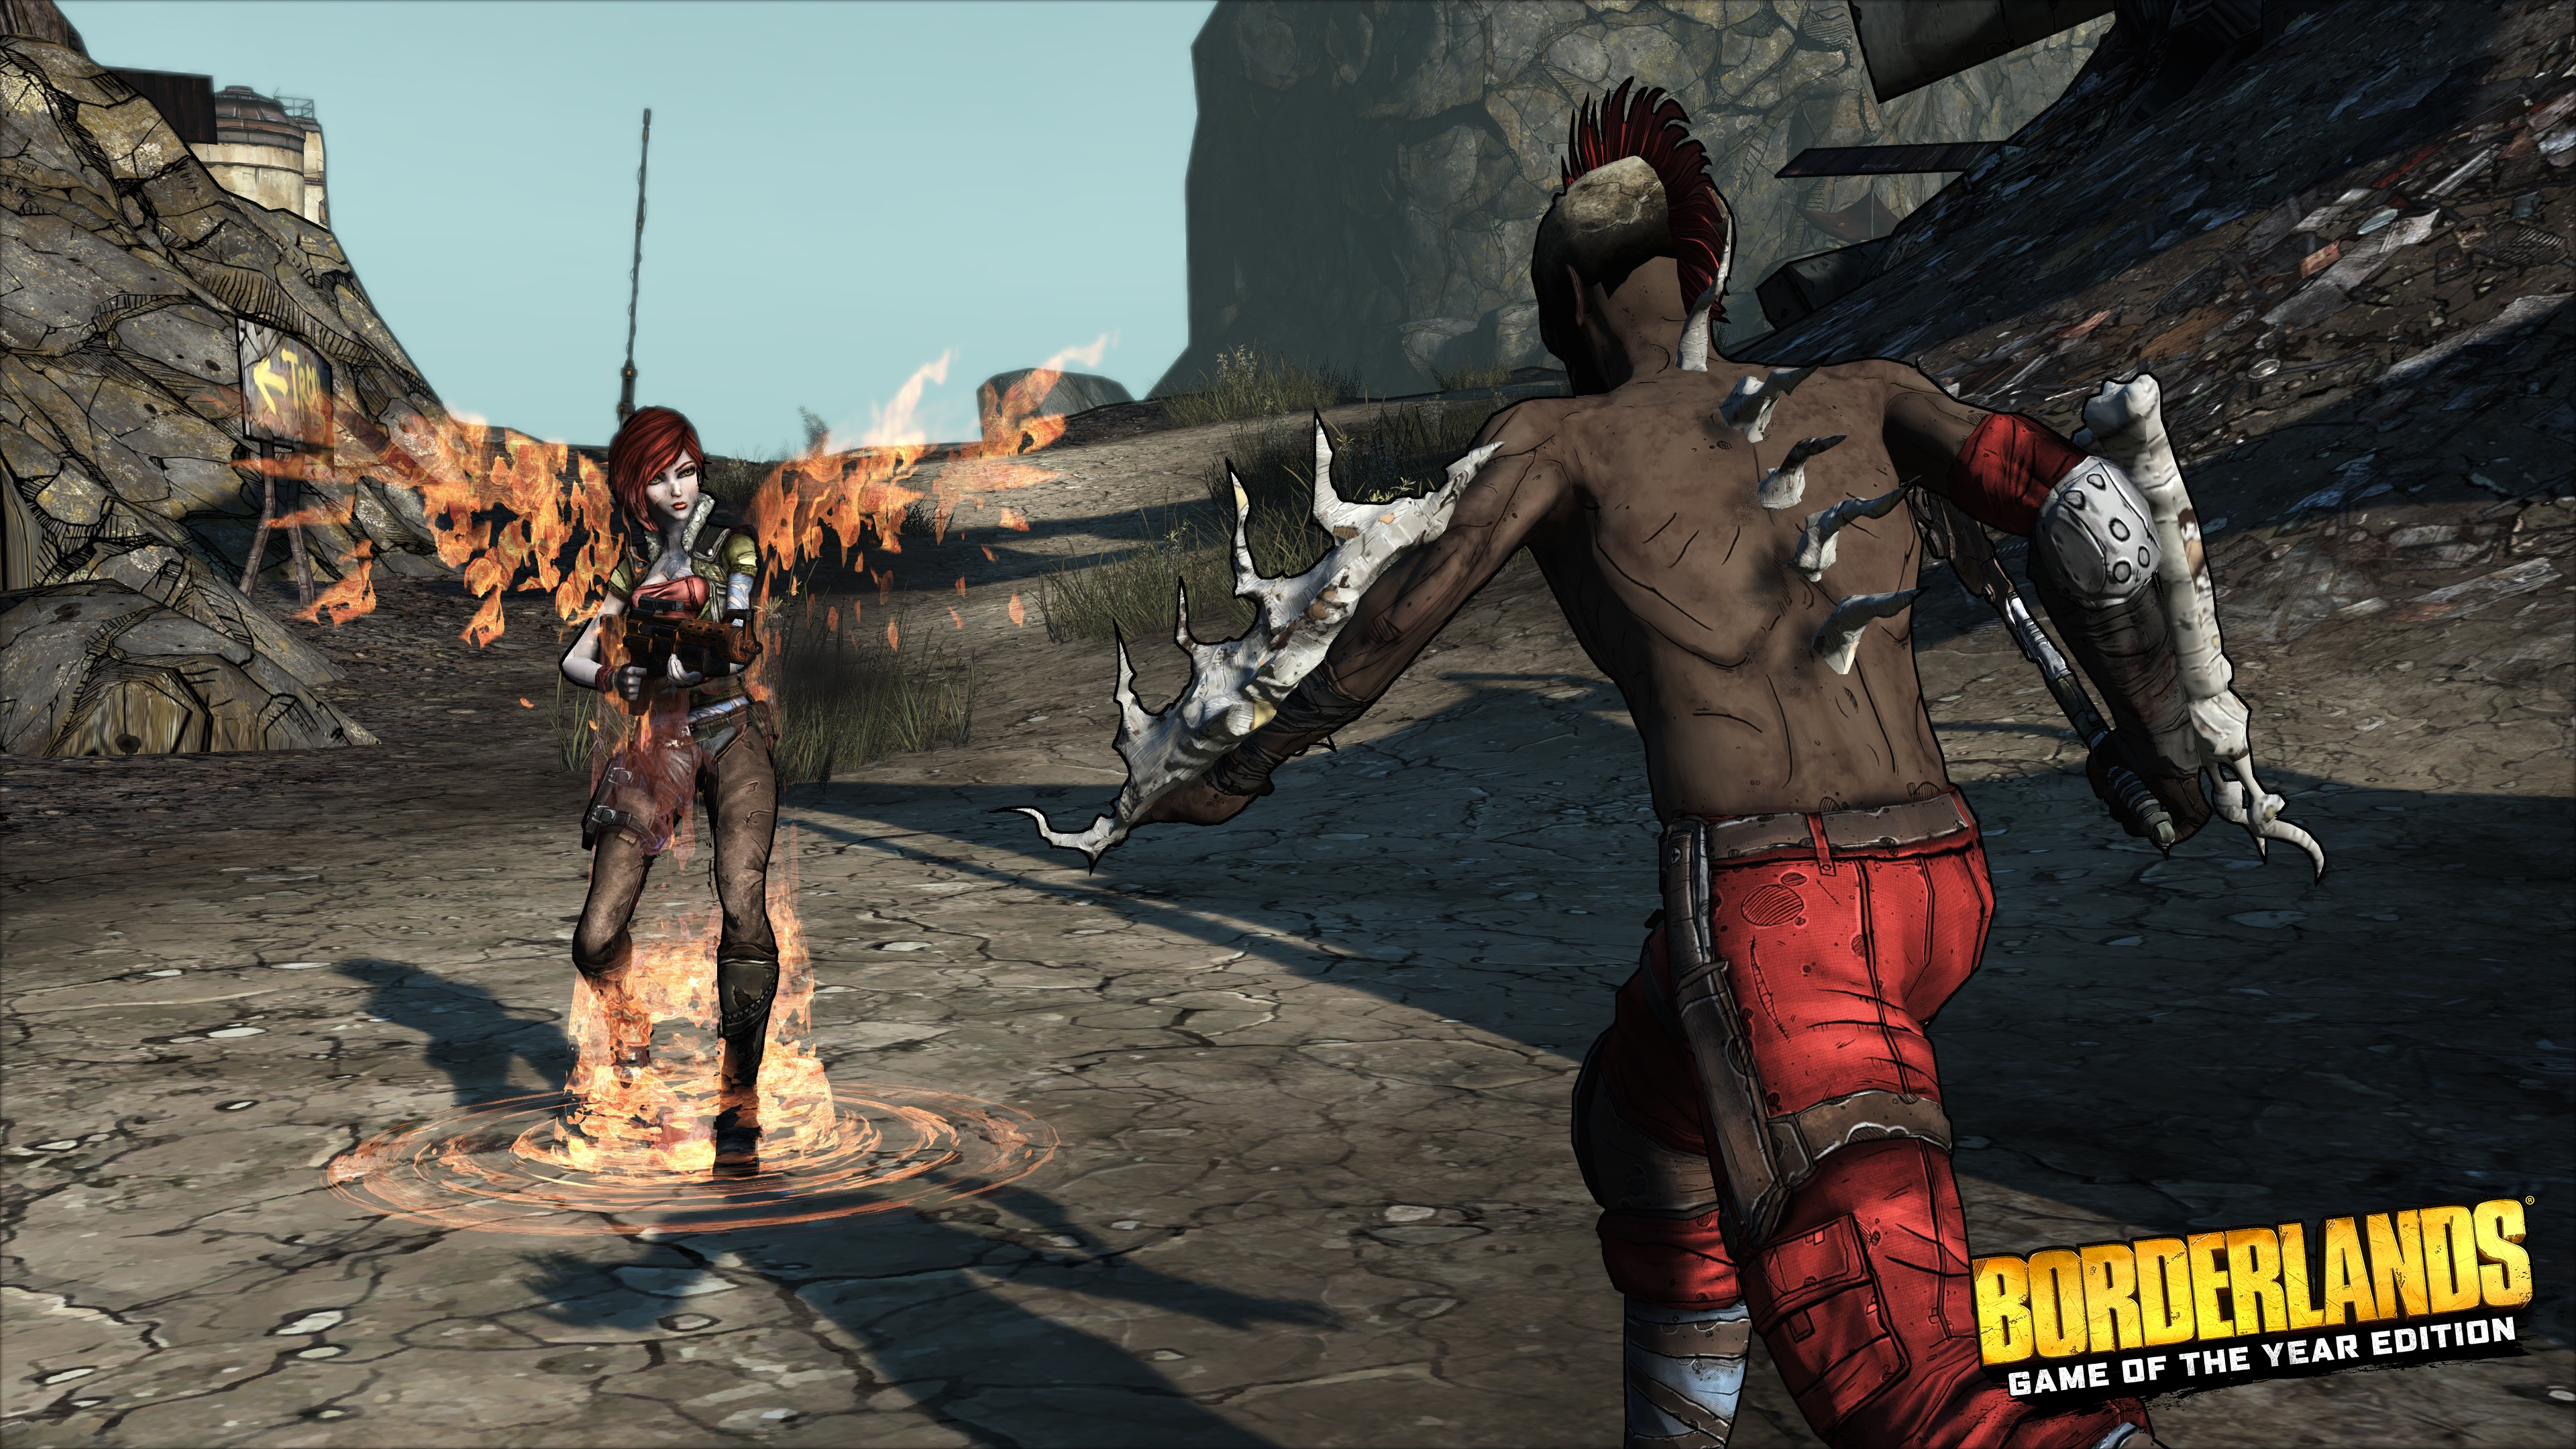 Borderlands remaster coming to PC, PS4, and Xbox One in